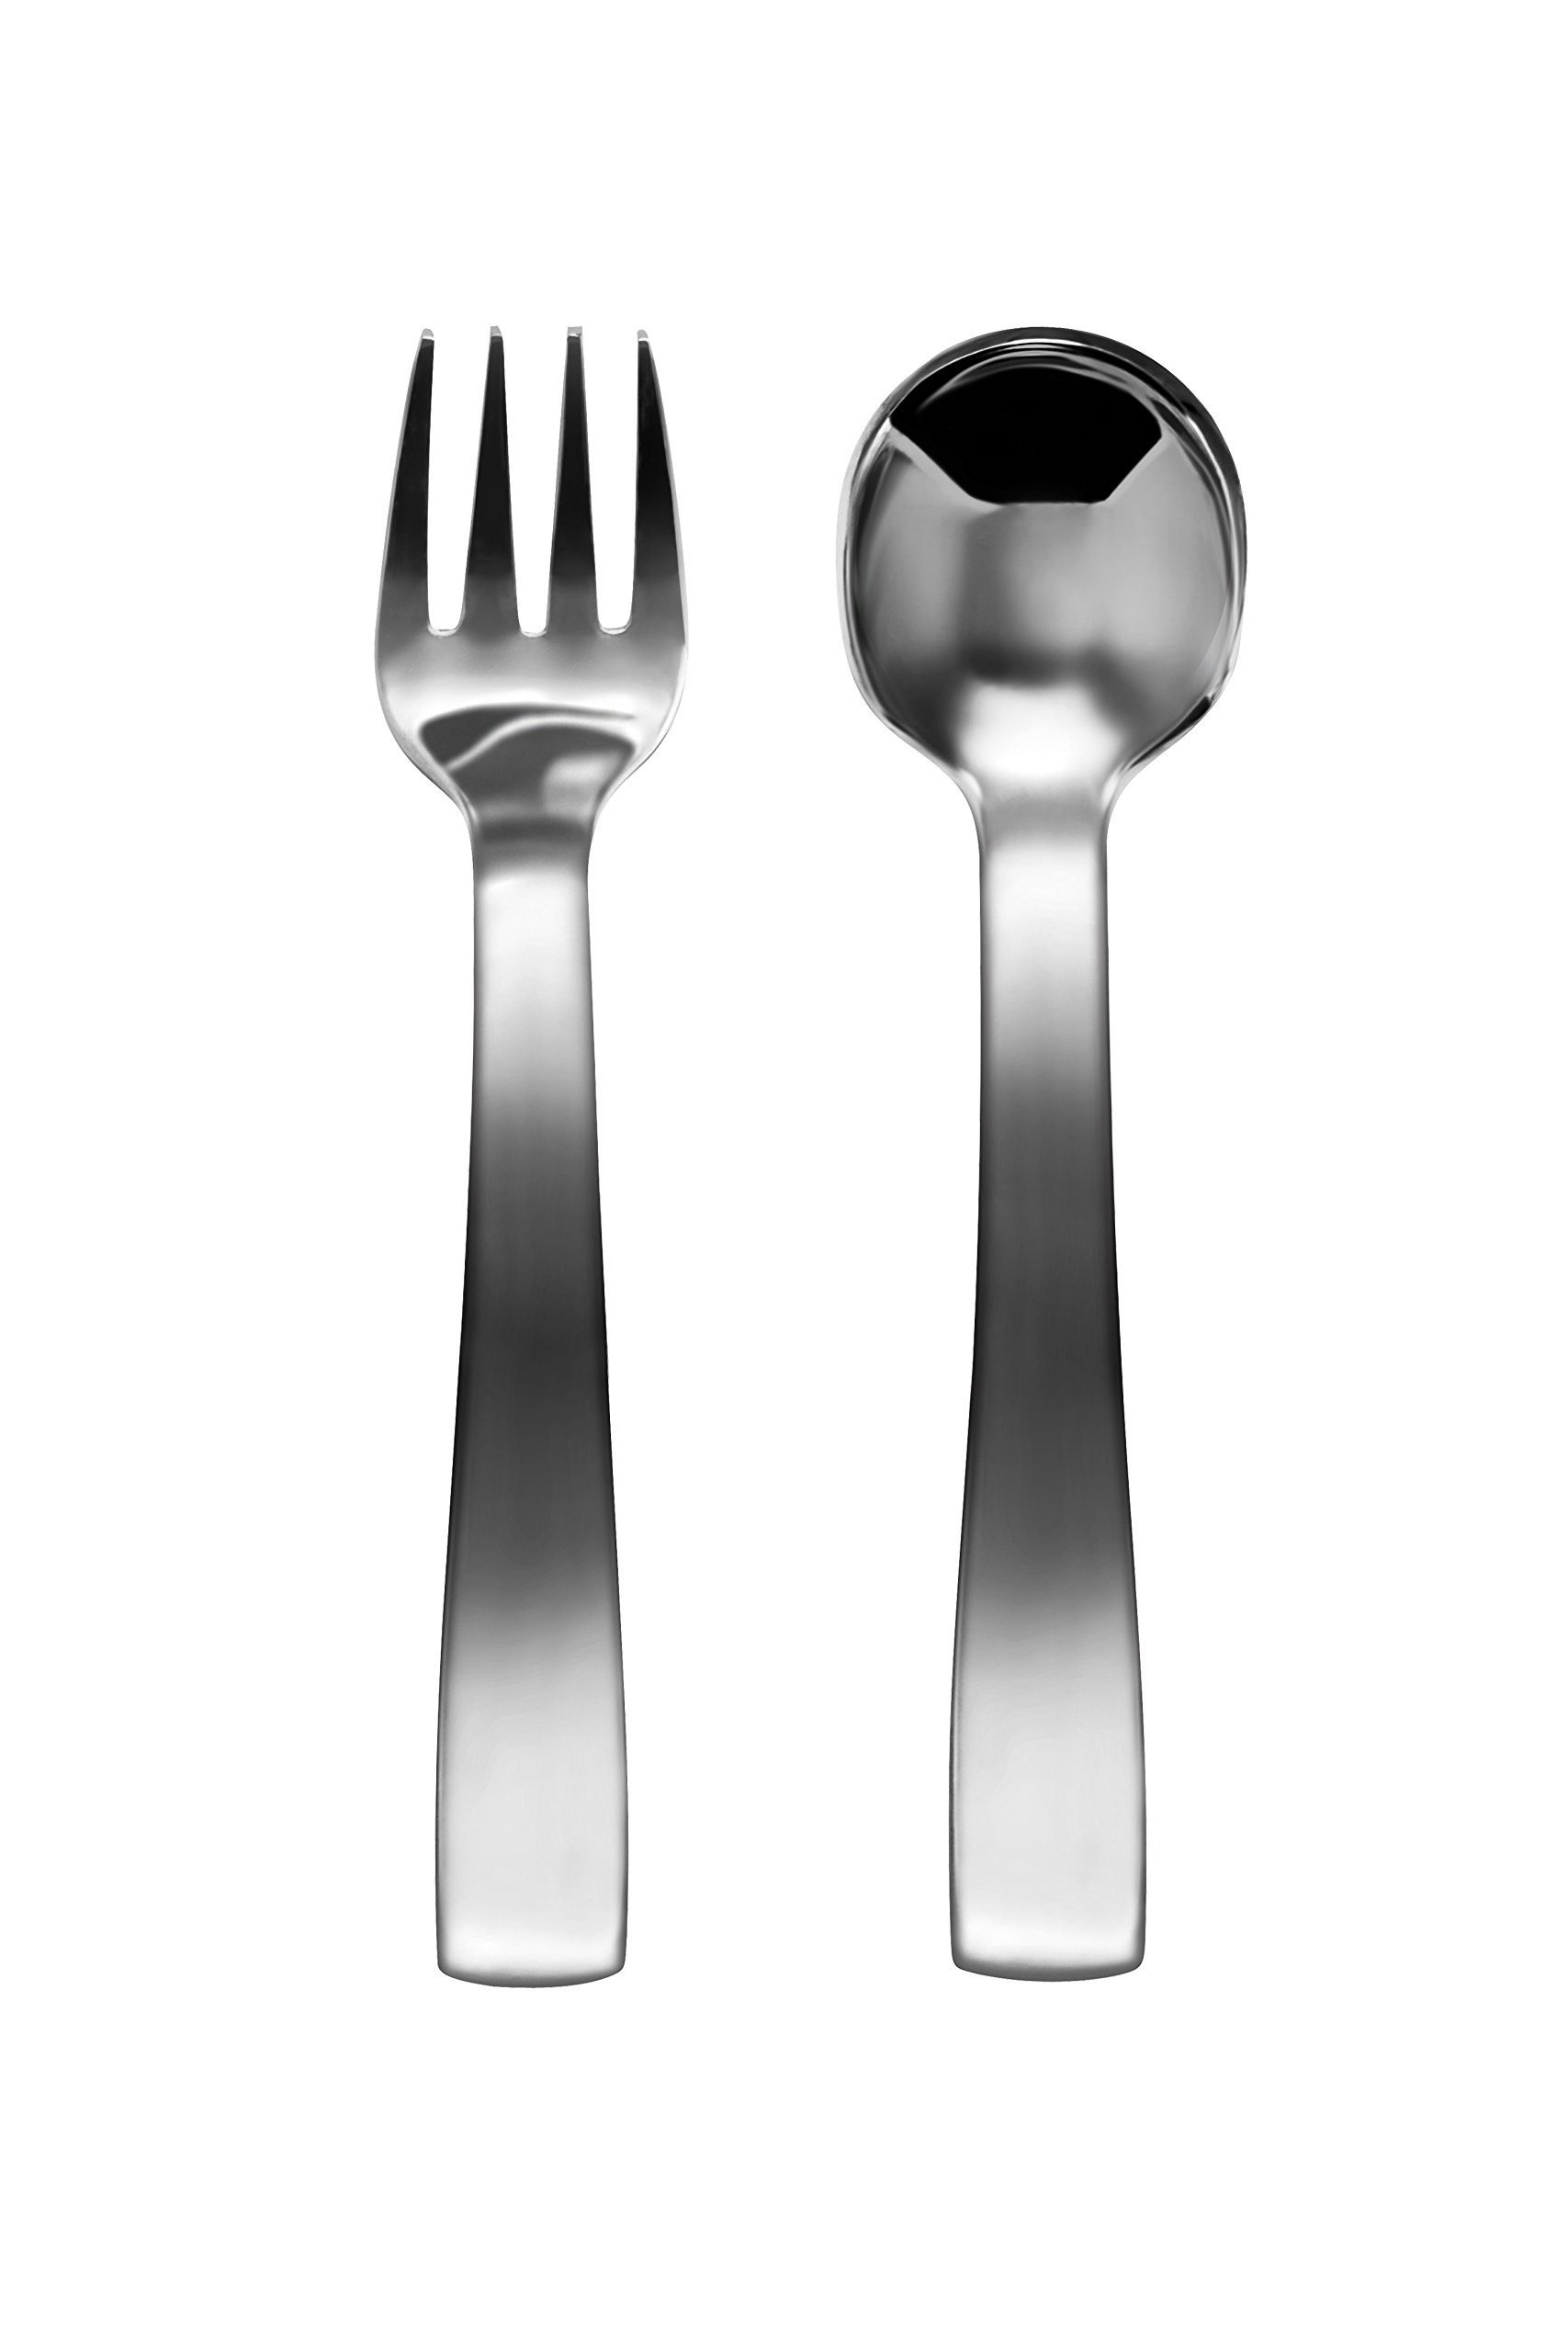 Cutelery Children's Stainless Steel Silverware Toddler (12 months to 3 yrs old) set: Spoon and Fork